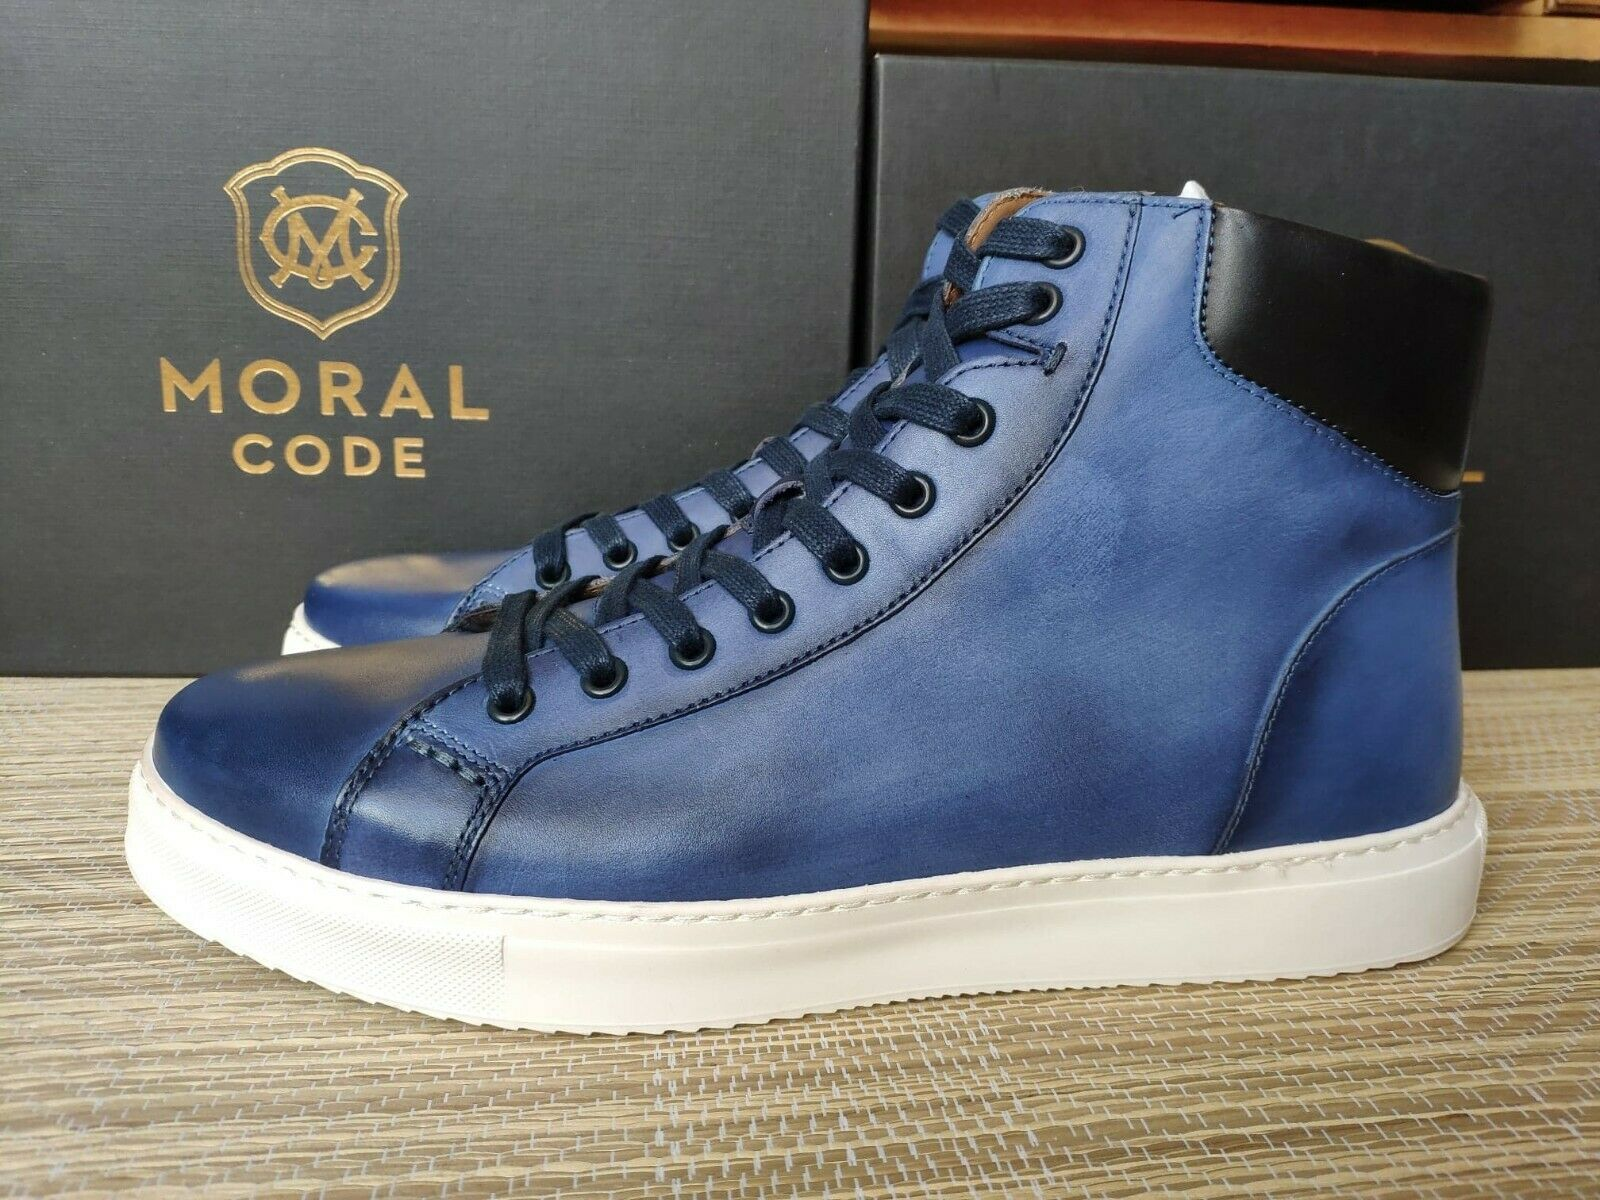 Moral Code men's Aiden high-top trainers -Light, 100% leather, running bit small